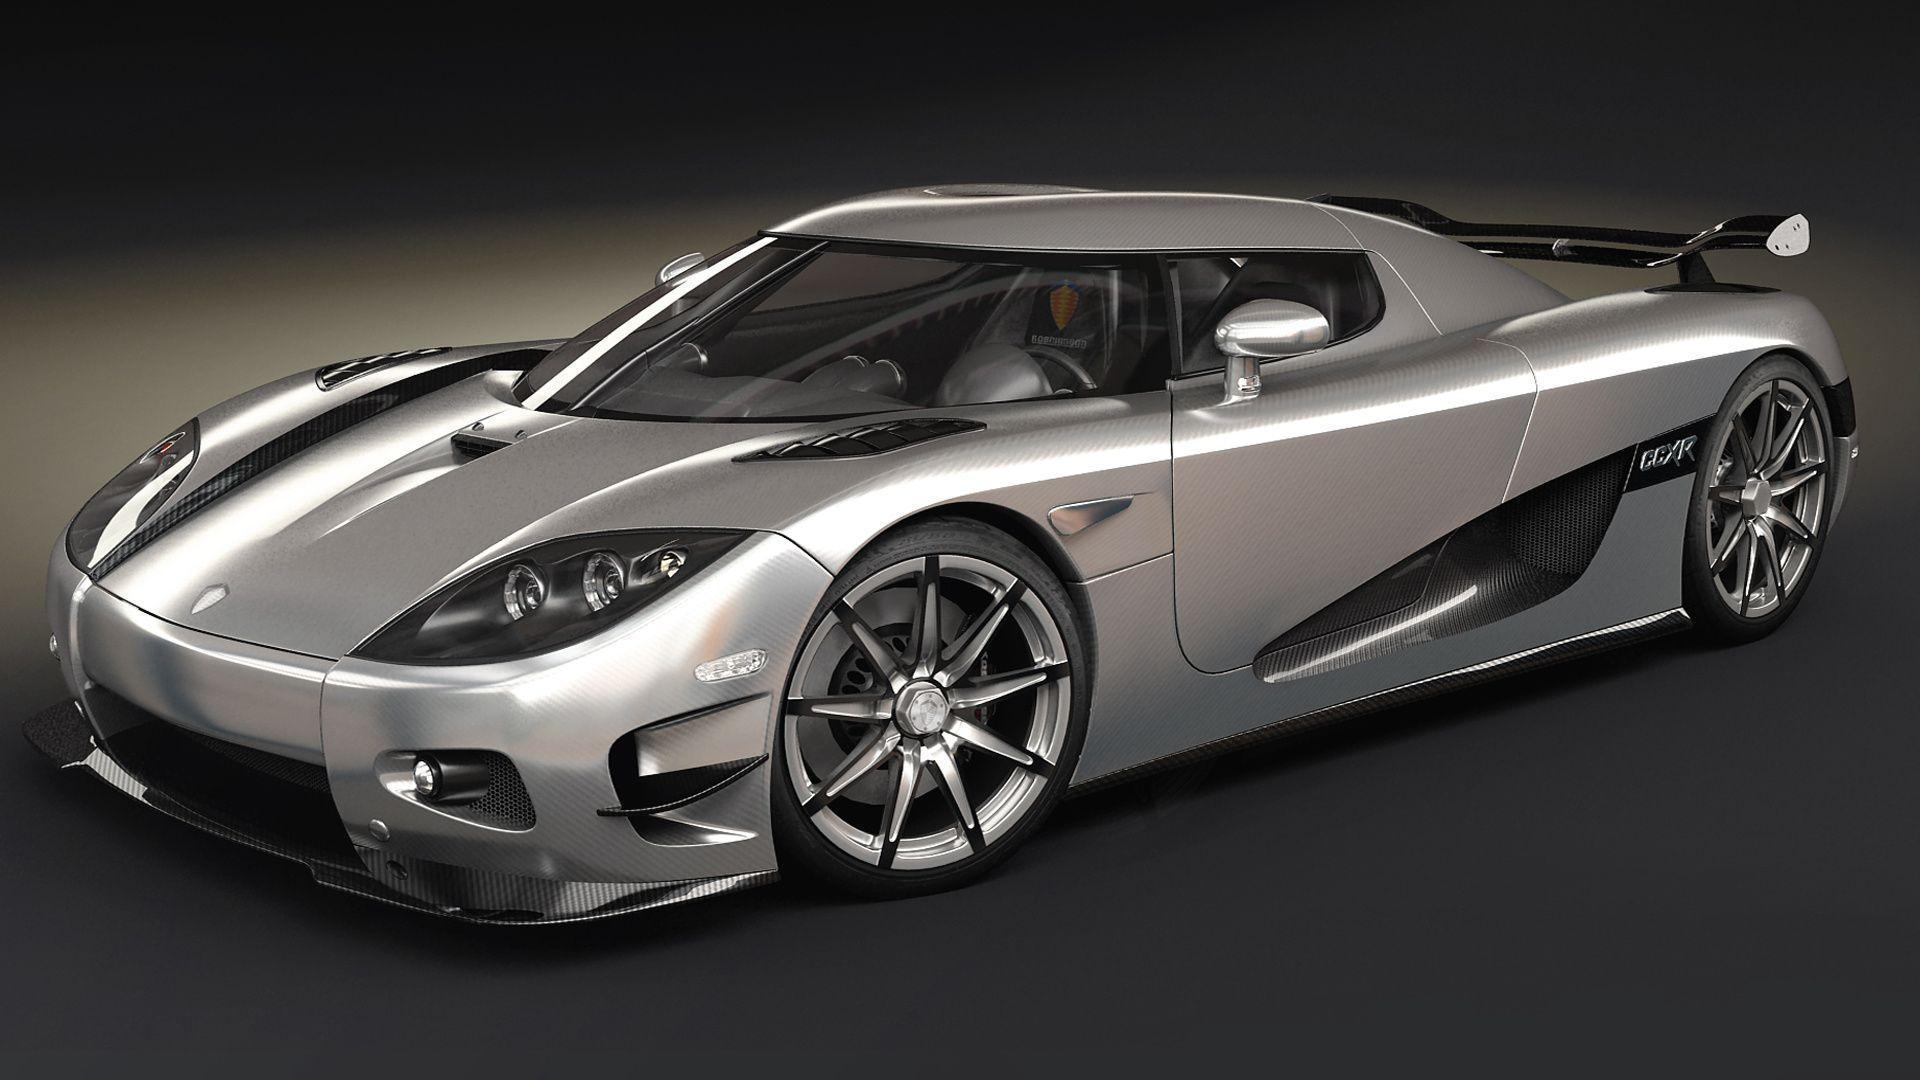 Koenigsegg Ccx Wallpapers  Wallpaper Cave